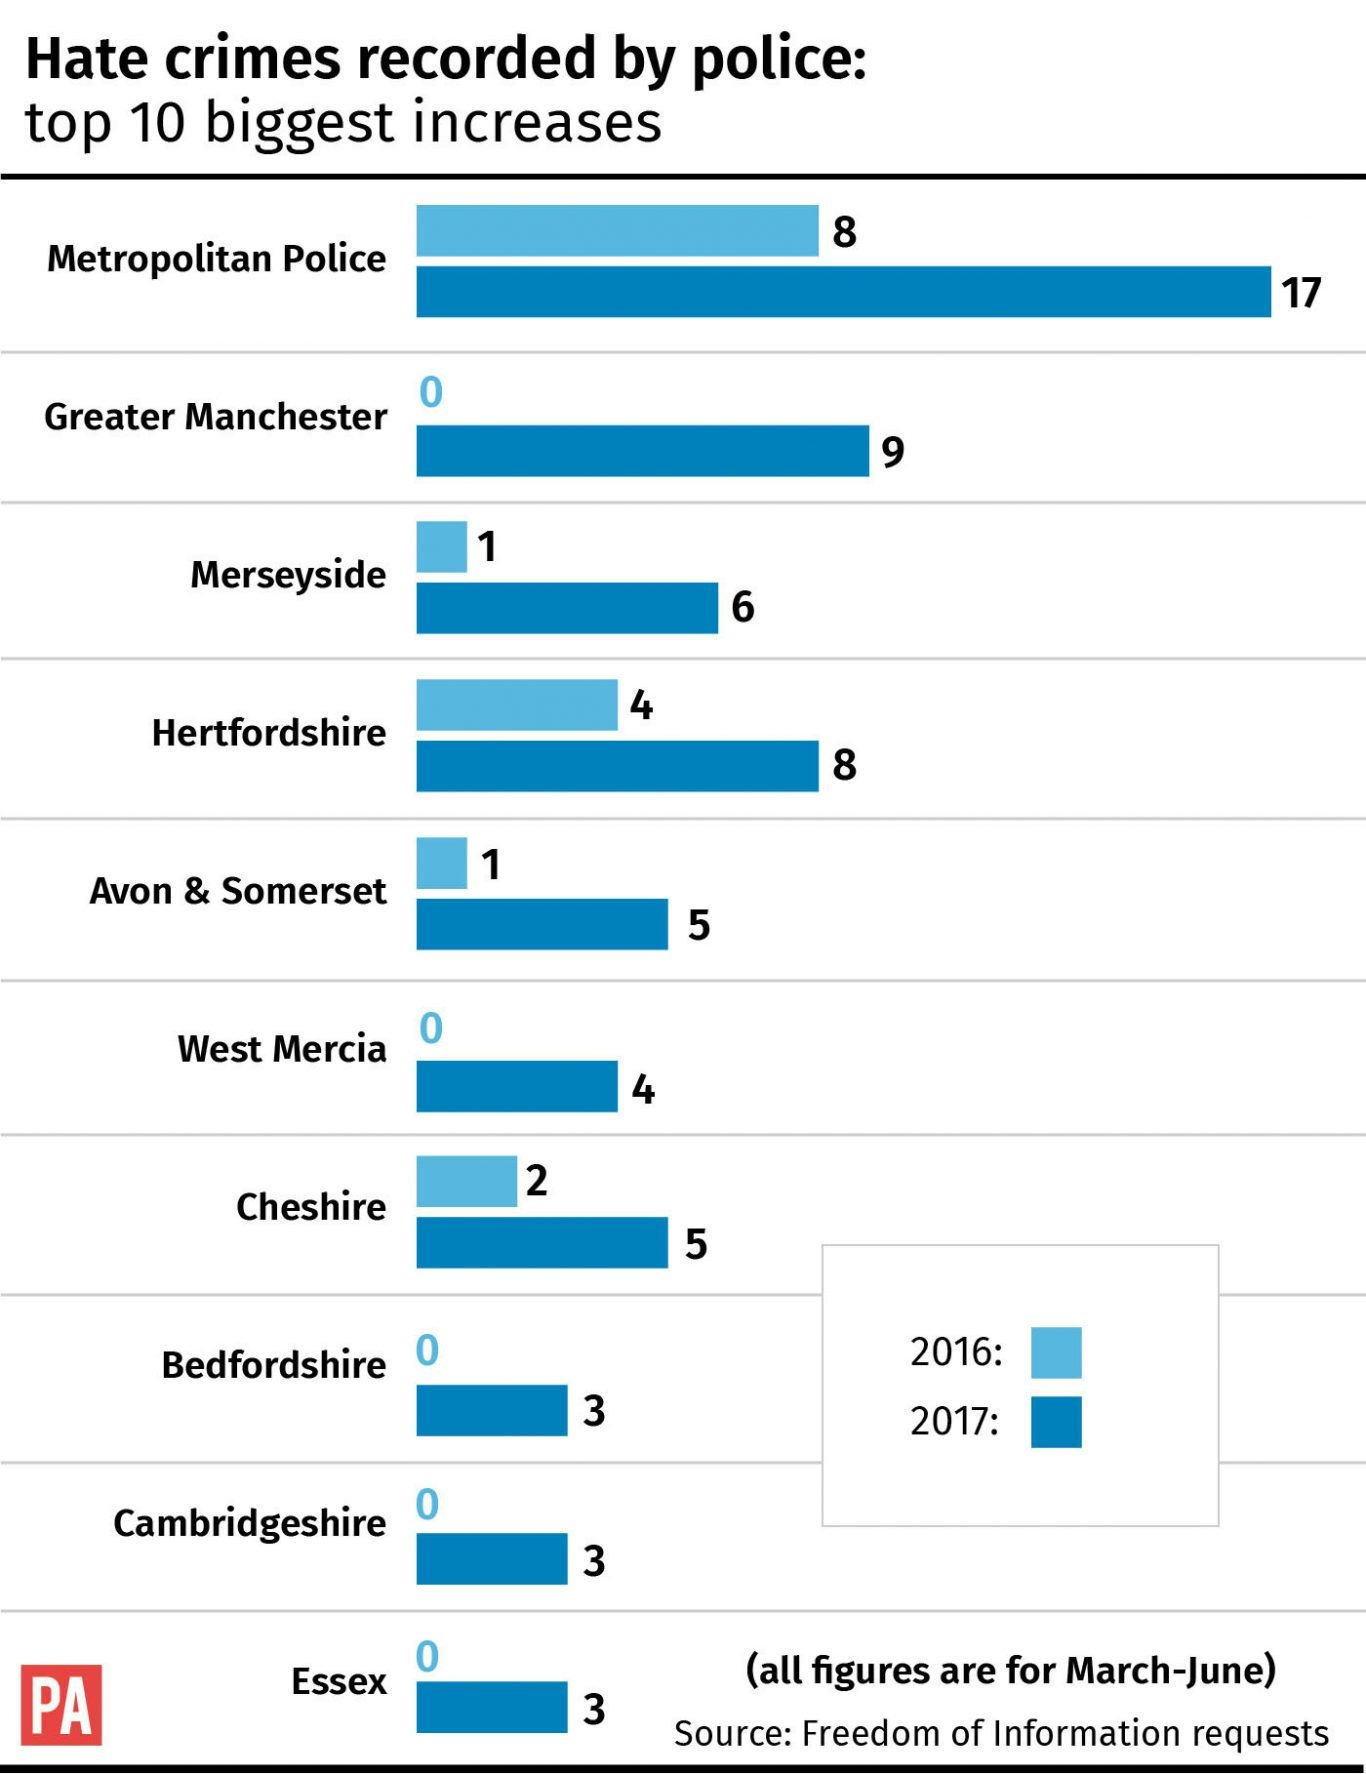 Hate crimes recorded by police, top 10 biggest increases